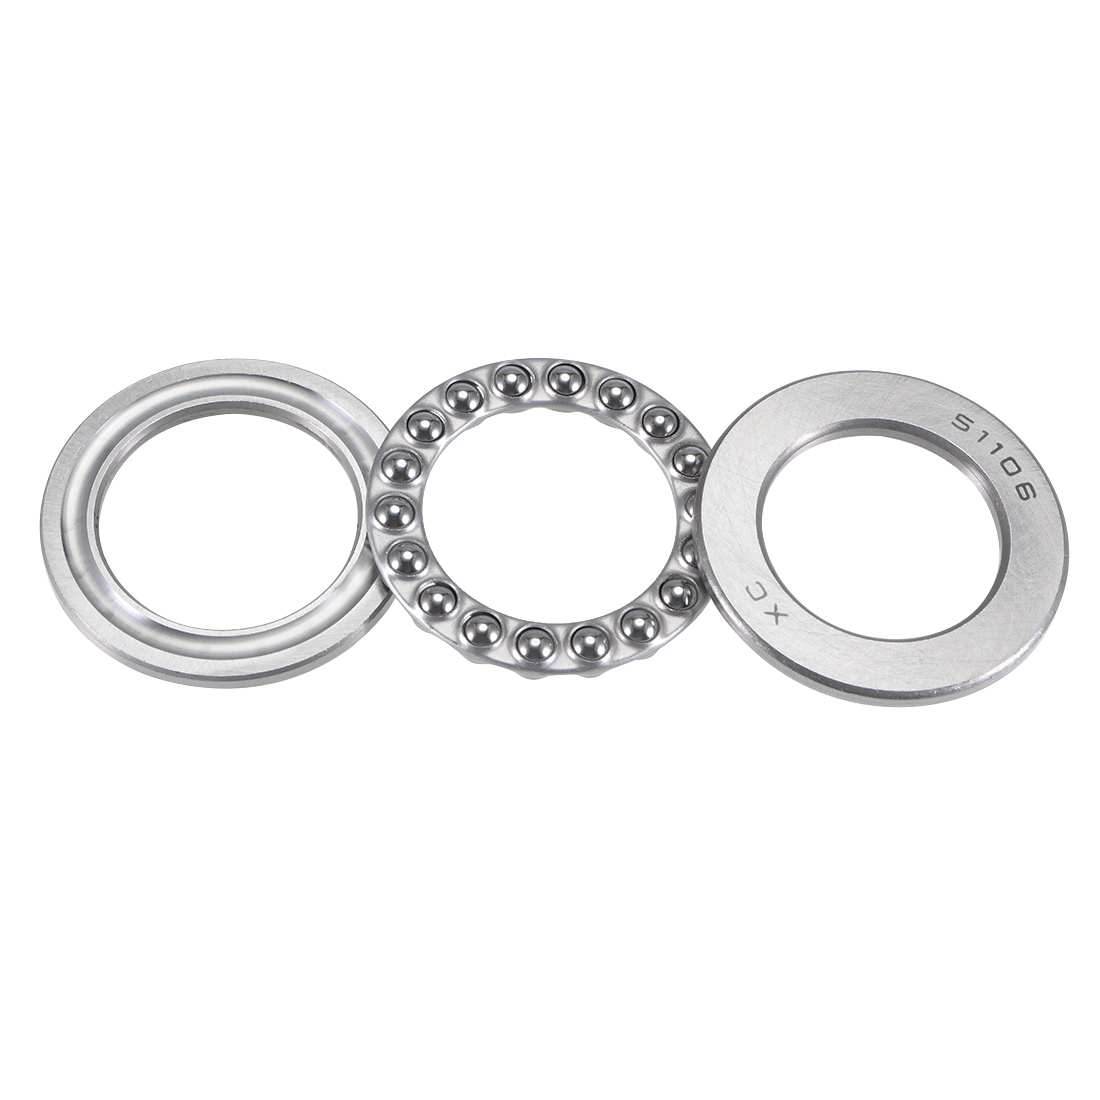 51106 Carbon Steel Thrust Ball Bearing 3 Part 30mmx47mmx11mm